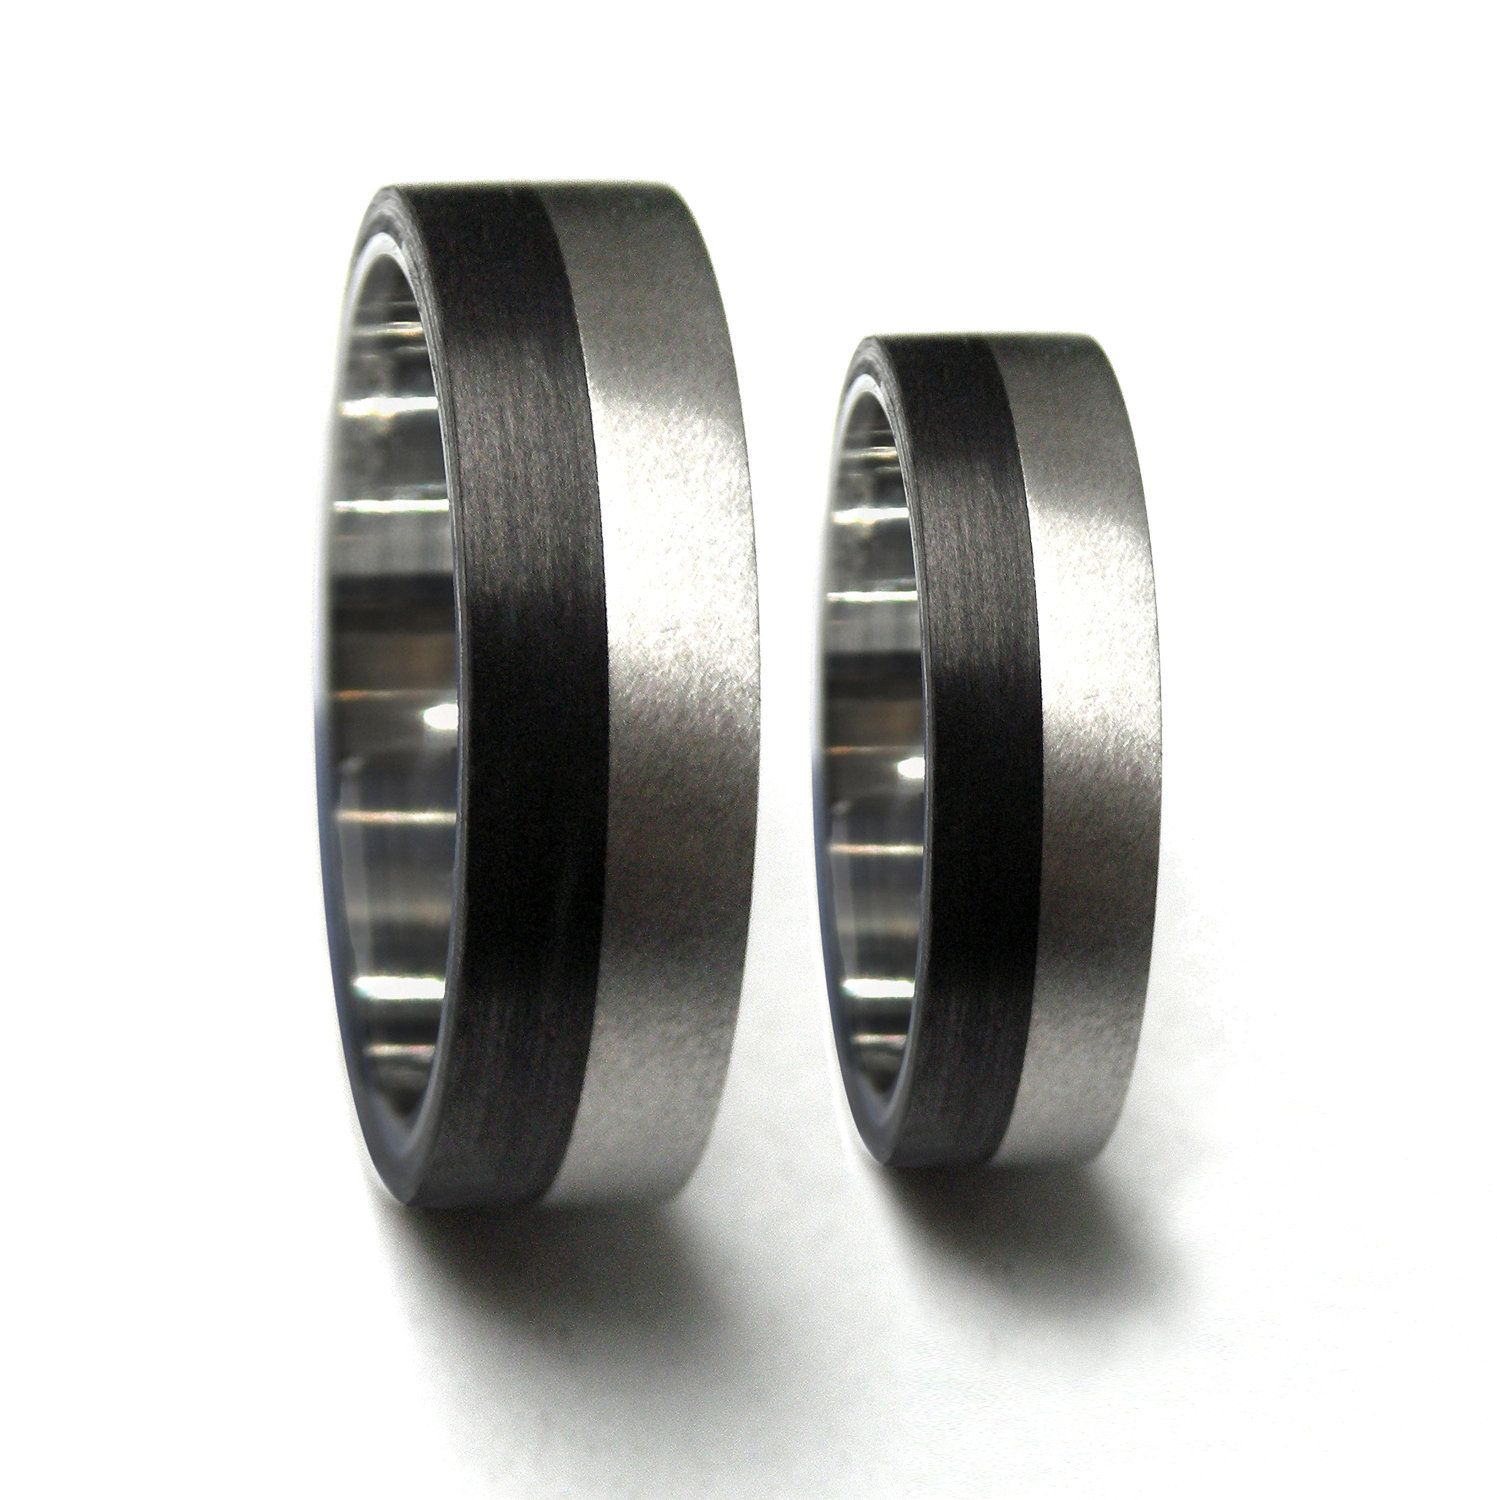 set of two titanium and carbon fiber wedding bands unique and modern black rings water resistant and hypoallergenic 00308_4n7n - Carbon Fiber Wedding Rings